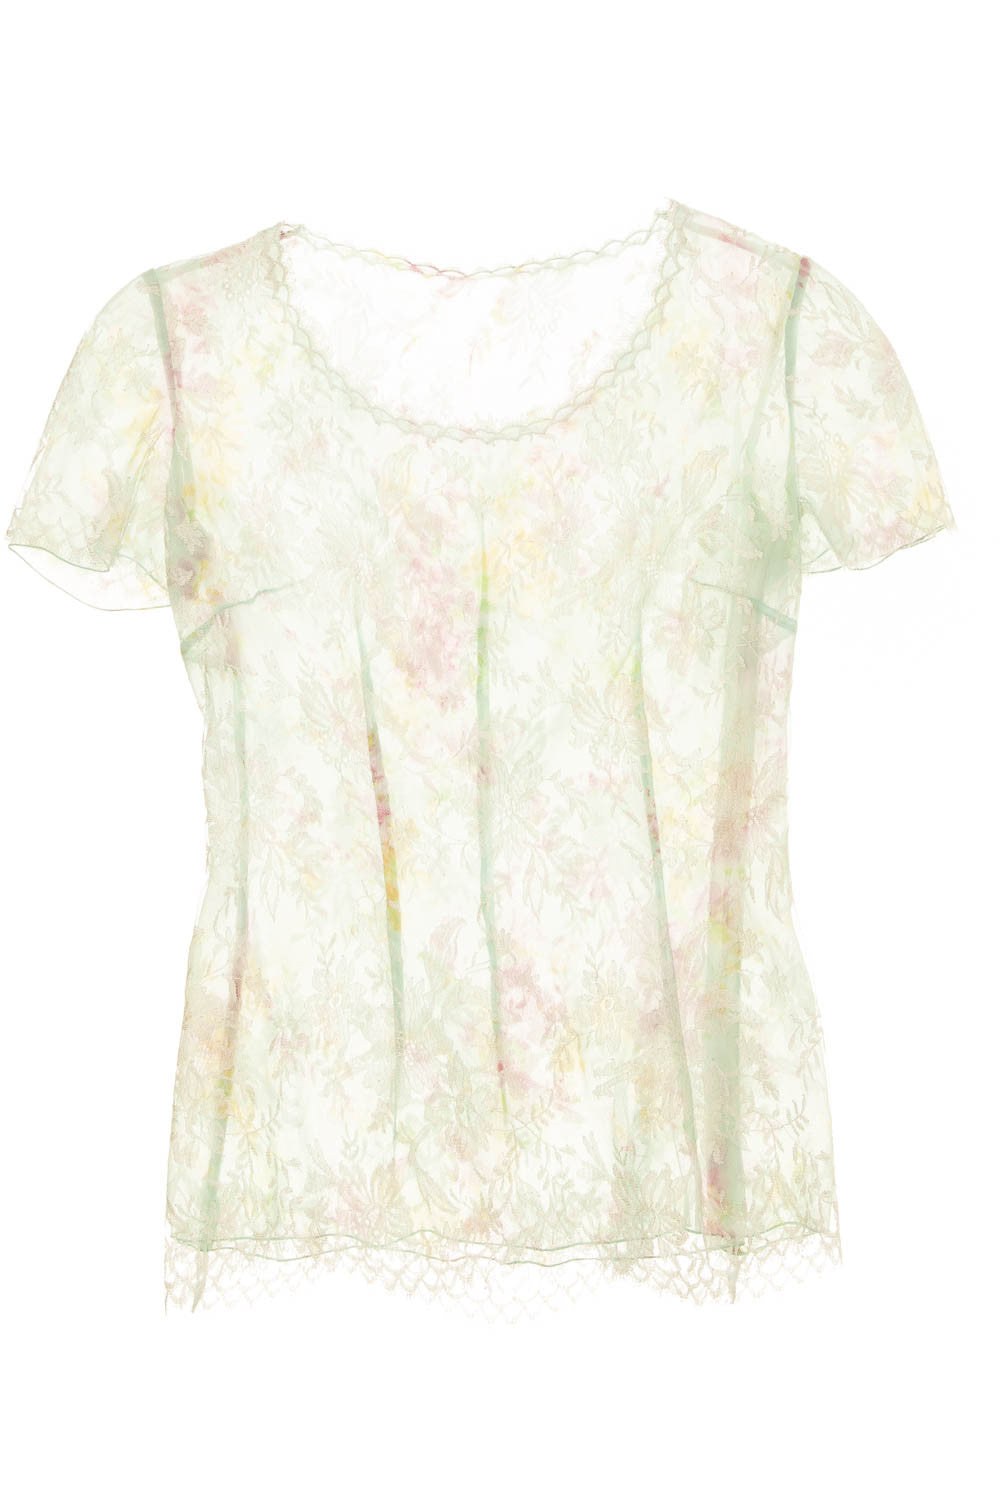 Ungaro - Mint Green Tailored Floral Sheer Lace Top - FR 38